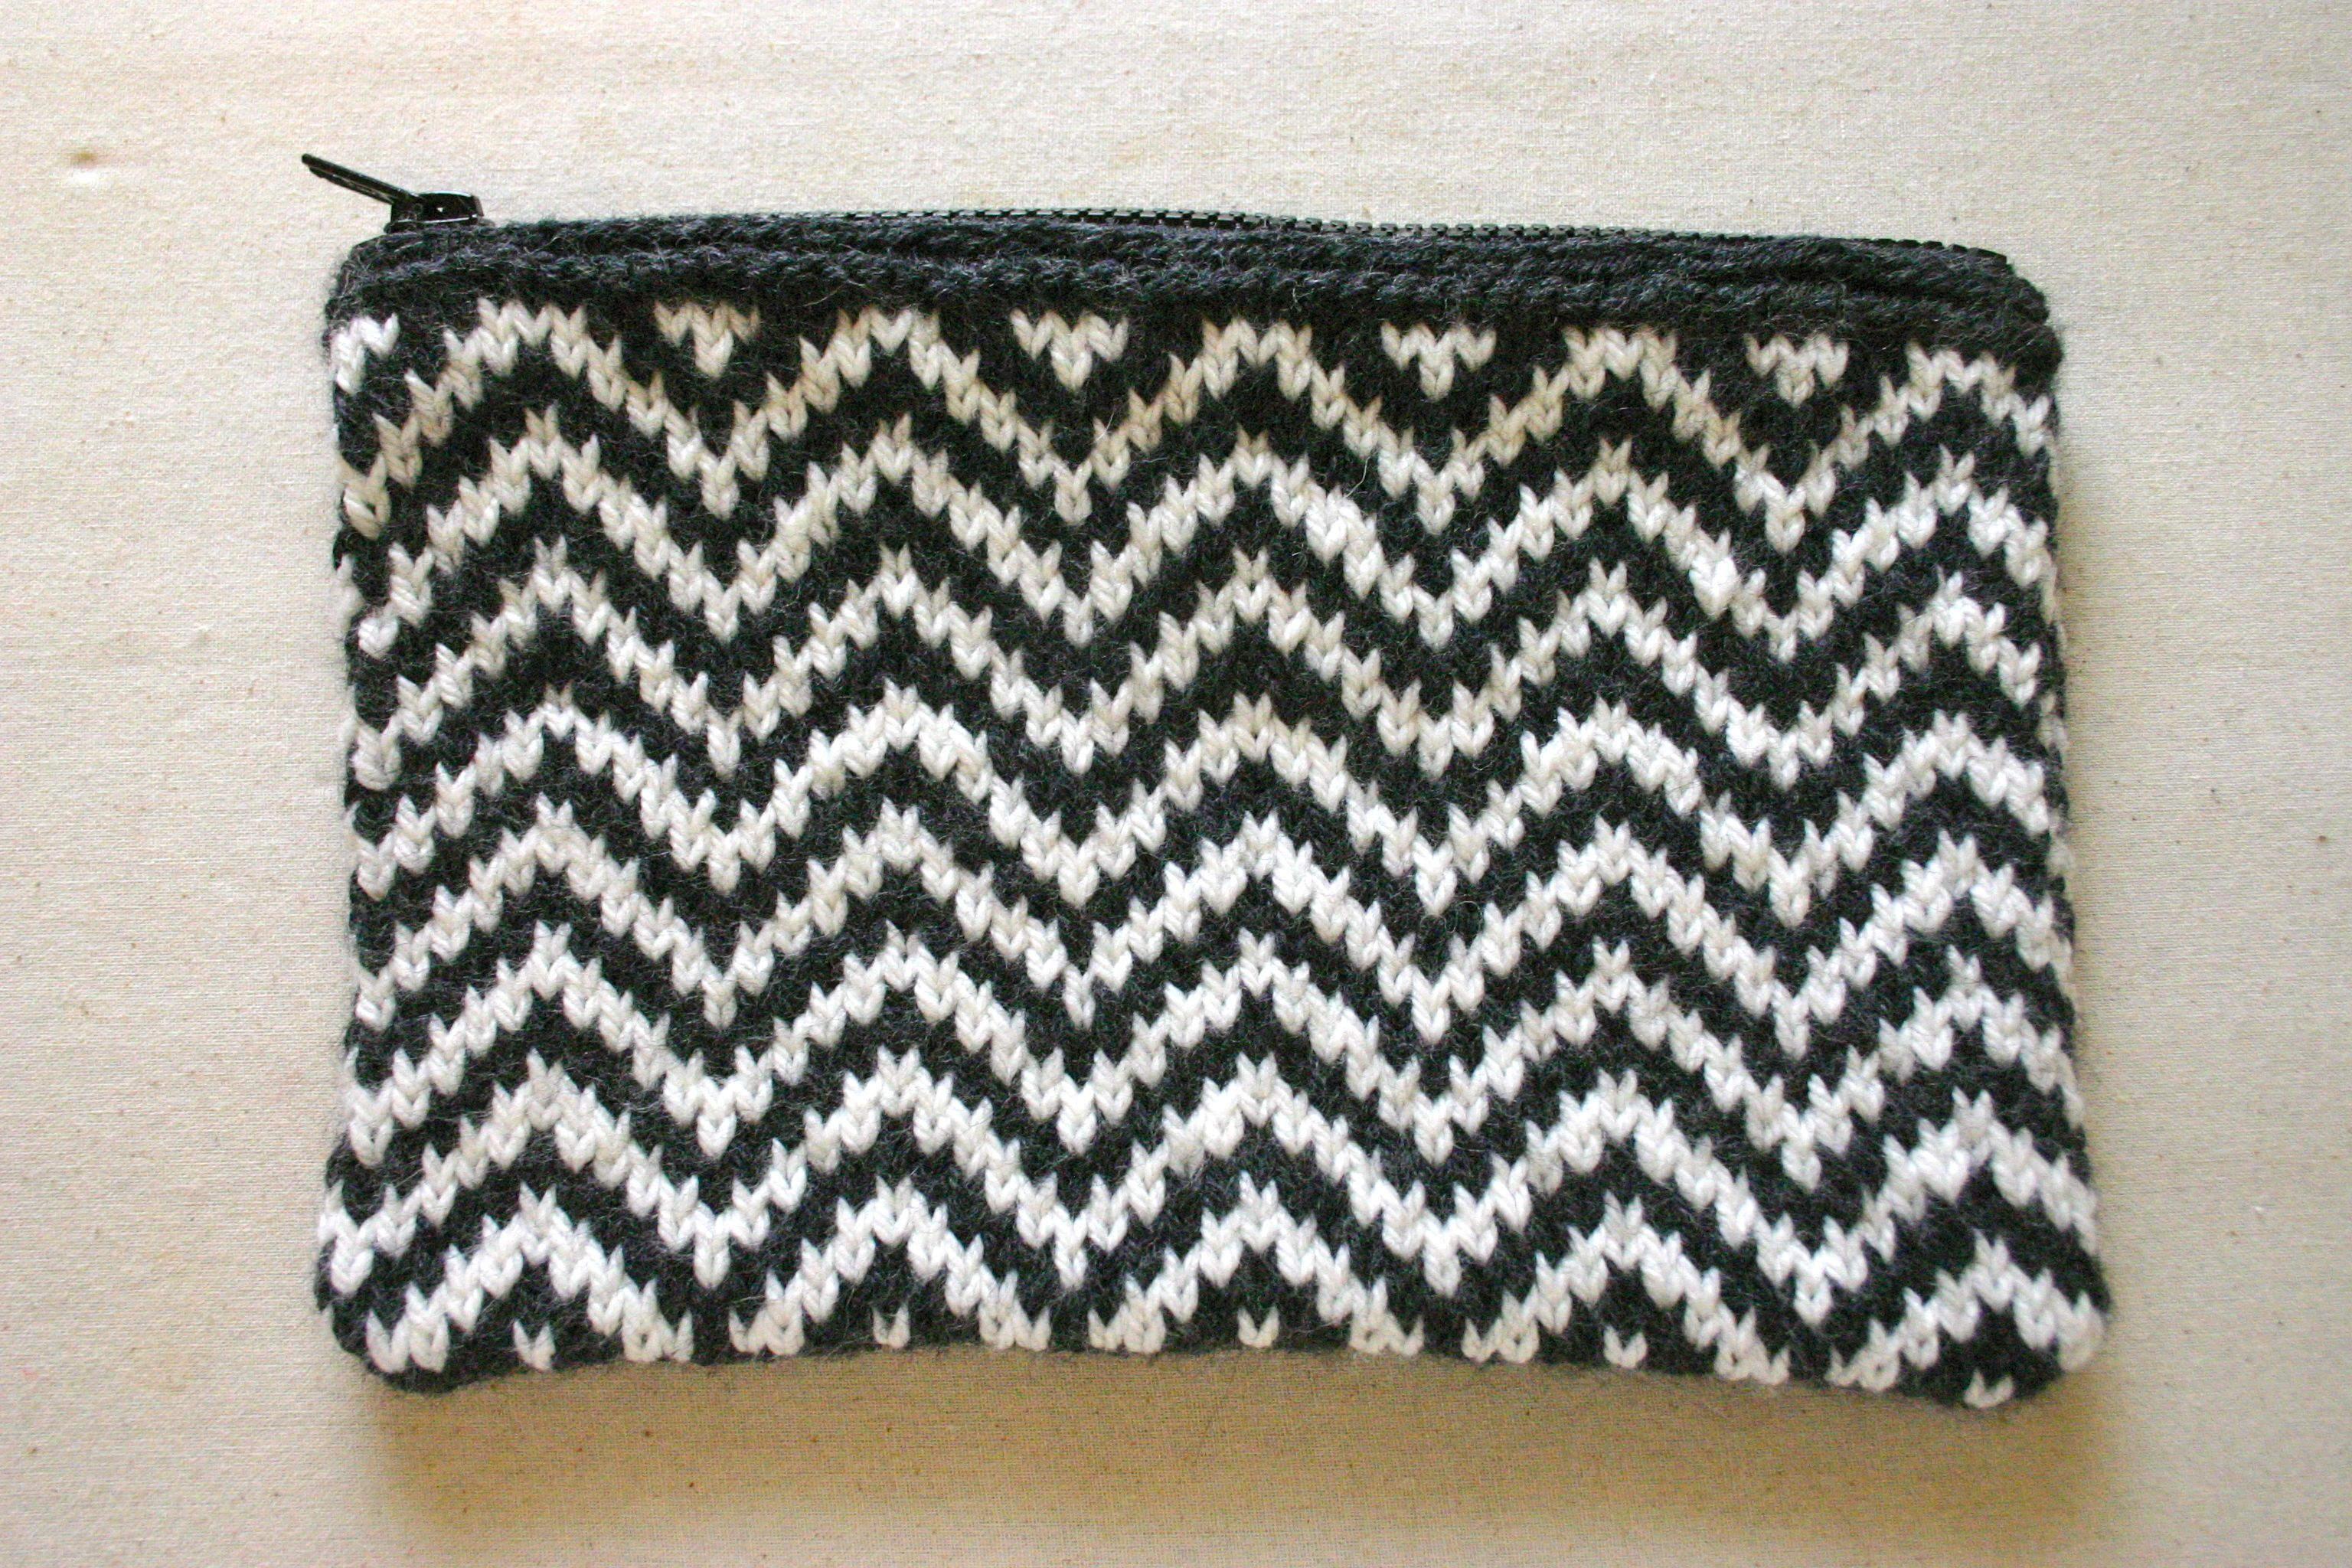 Knitted Handbags Patterns : Chevron Knitting Pattern A Knitting Blog